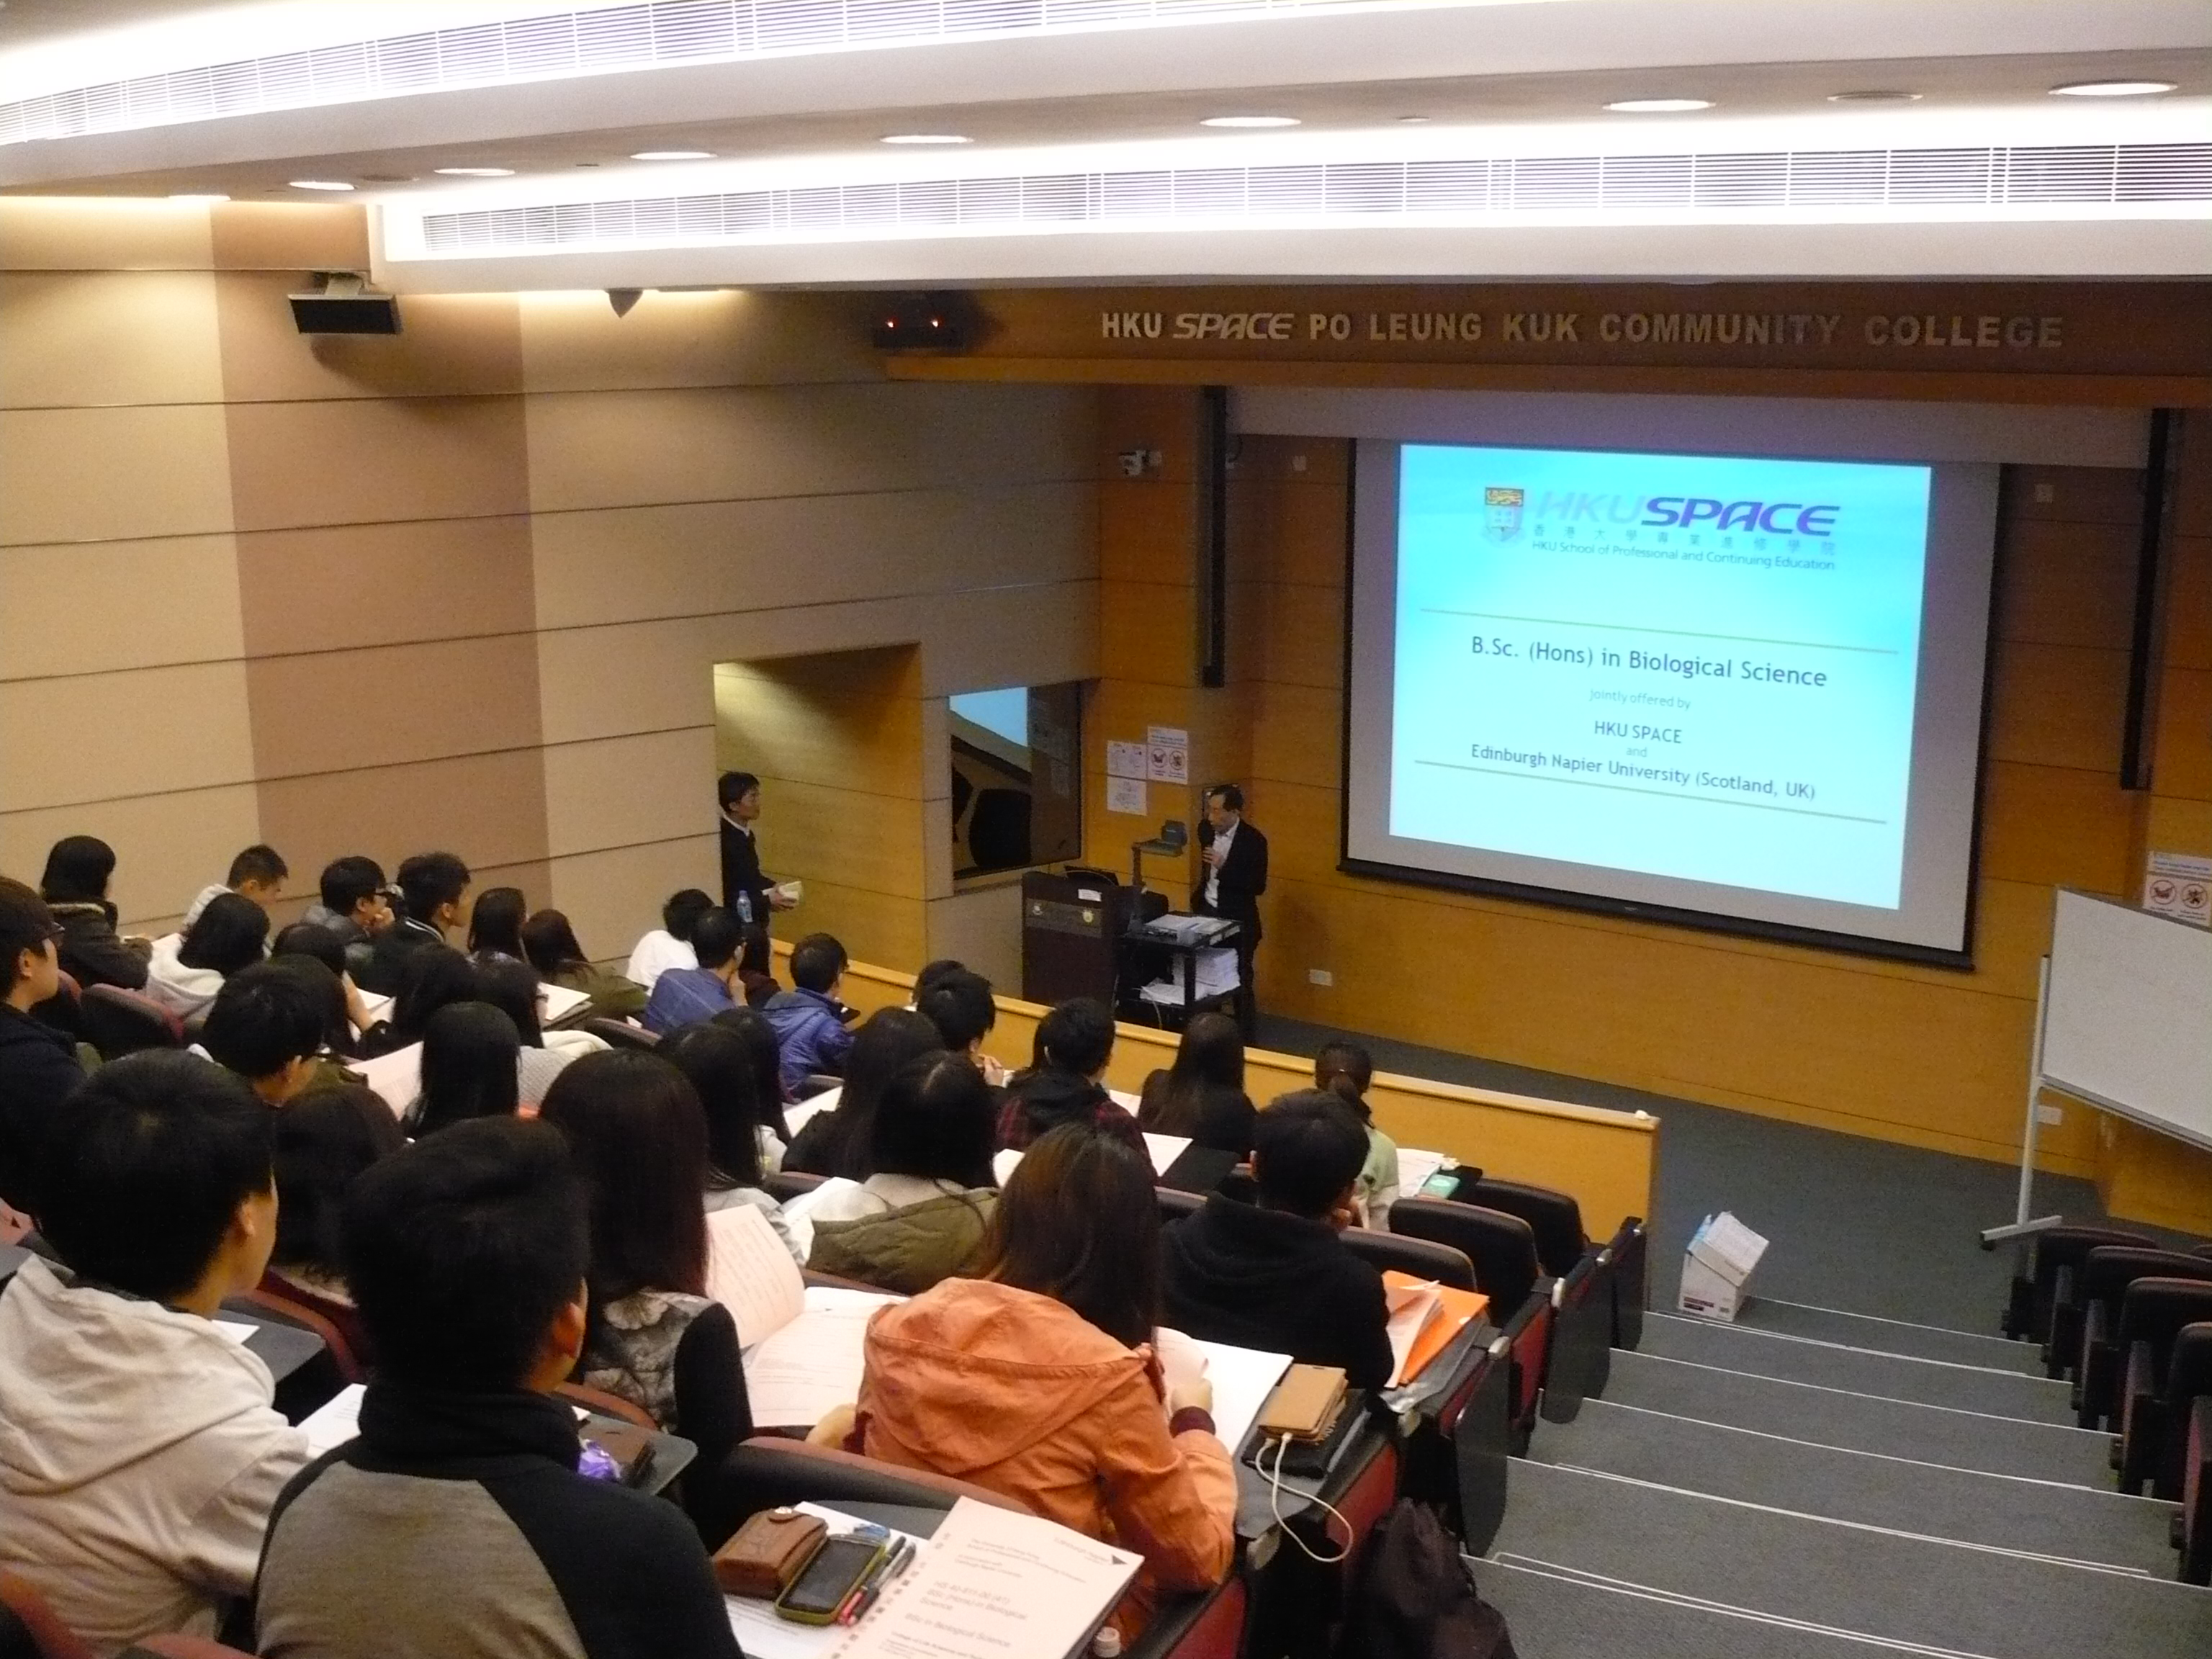 Programme Seminar:  BSc Biological Science, Edinburgh Napier University in collaboration with HKU SPACE - Photo - 3